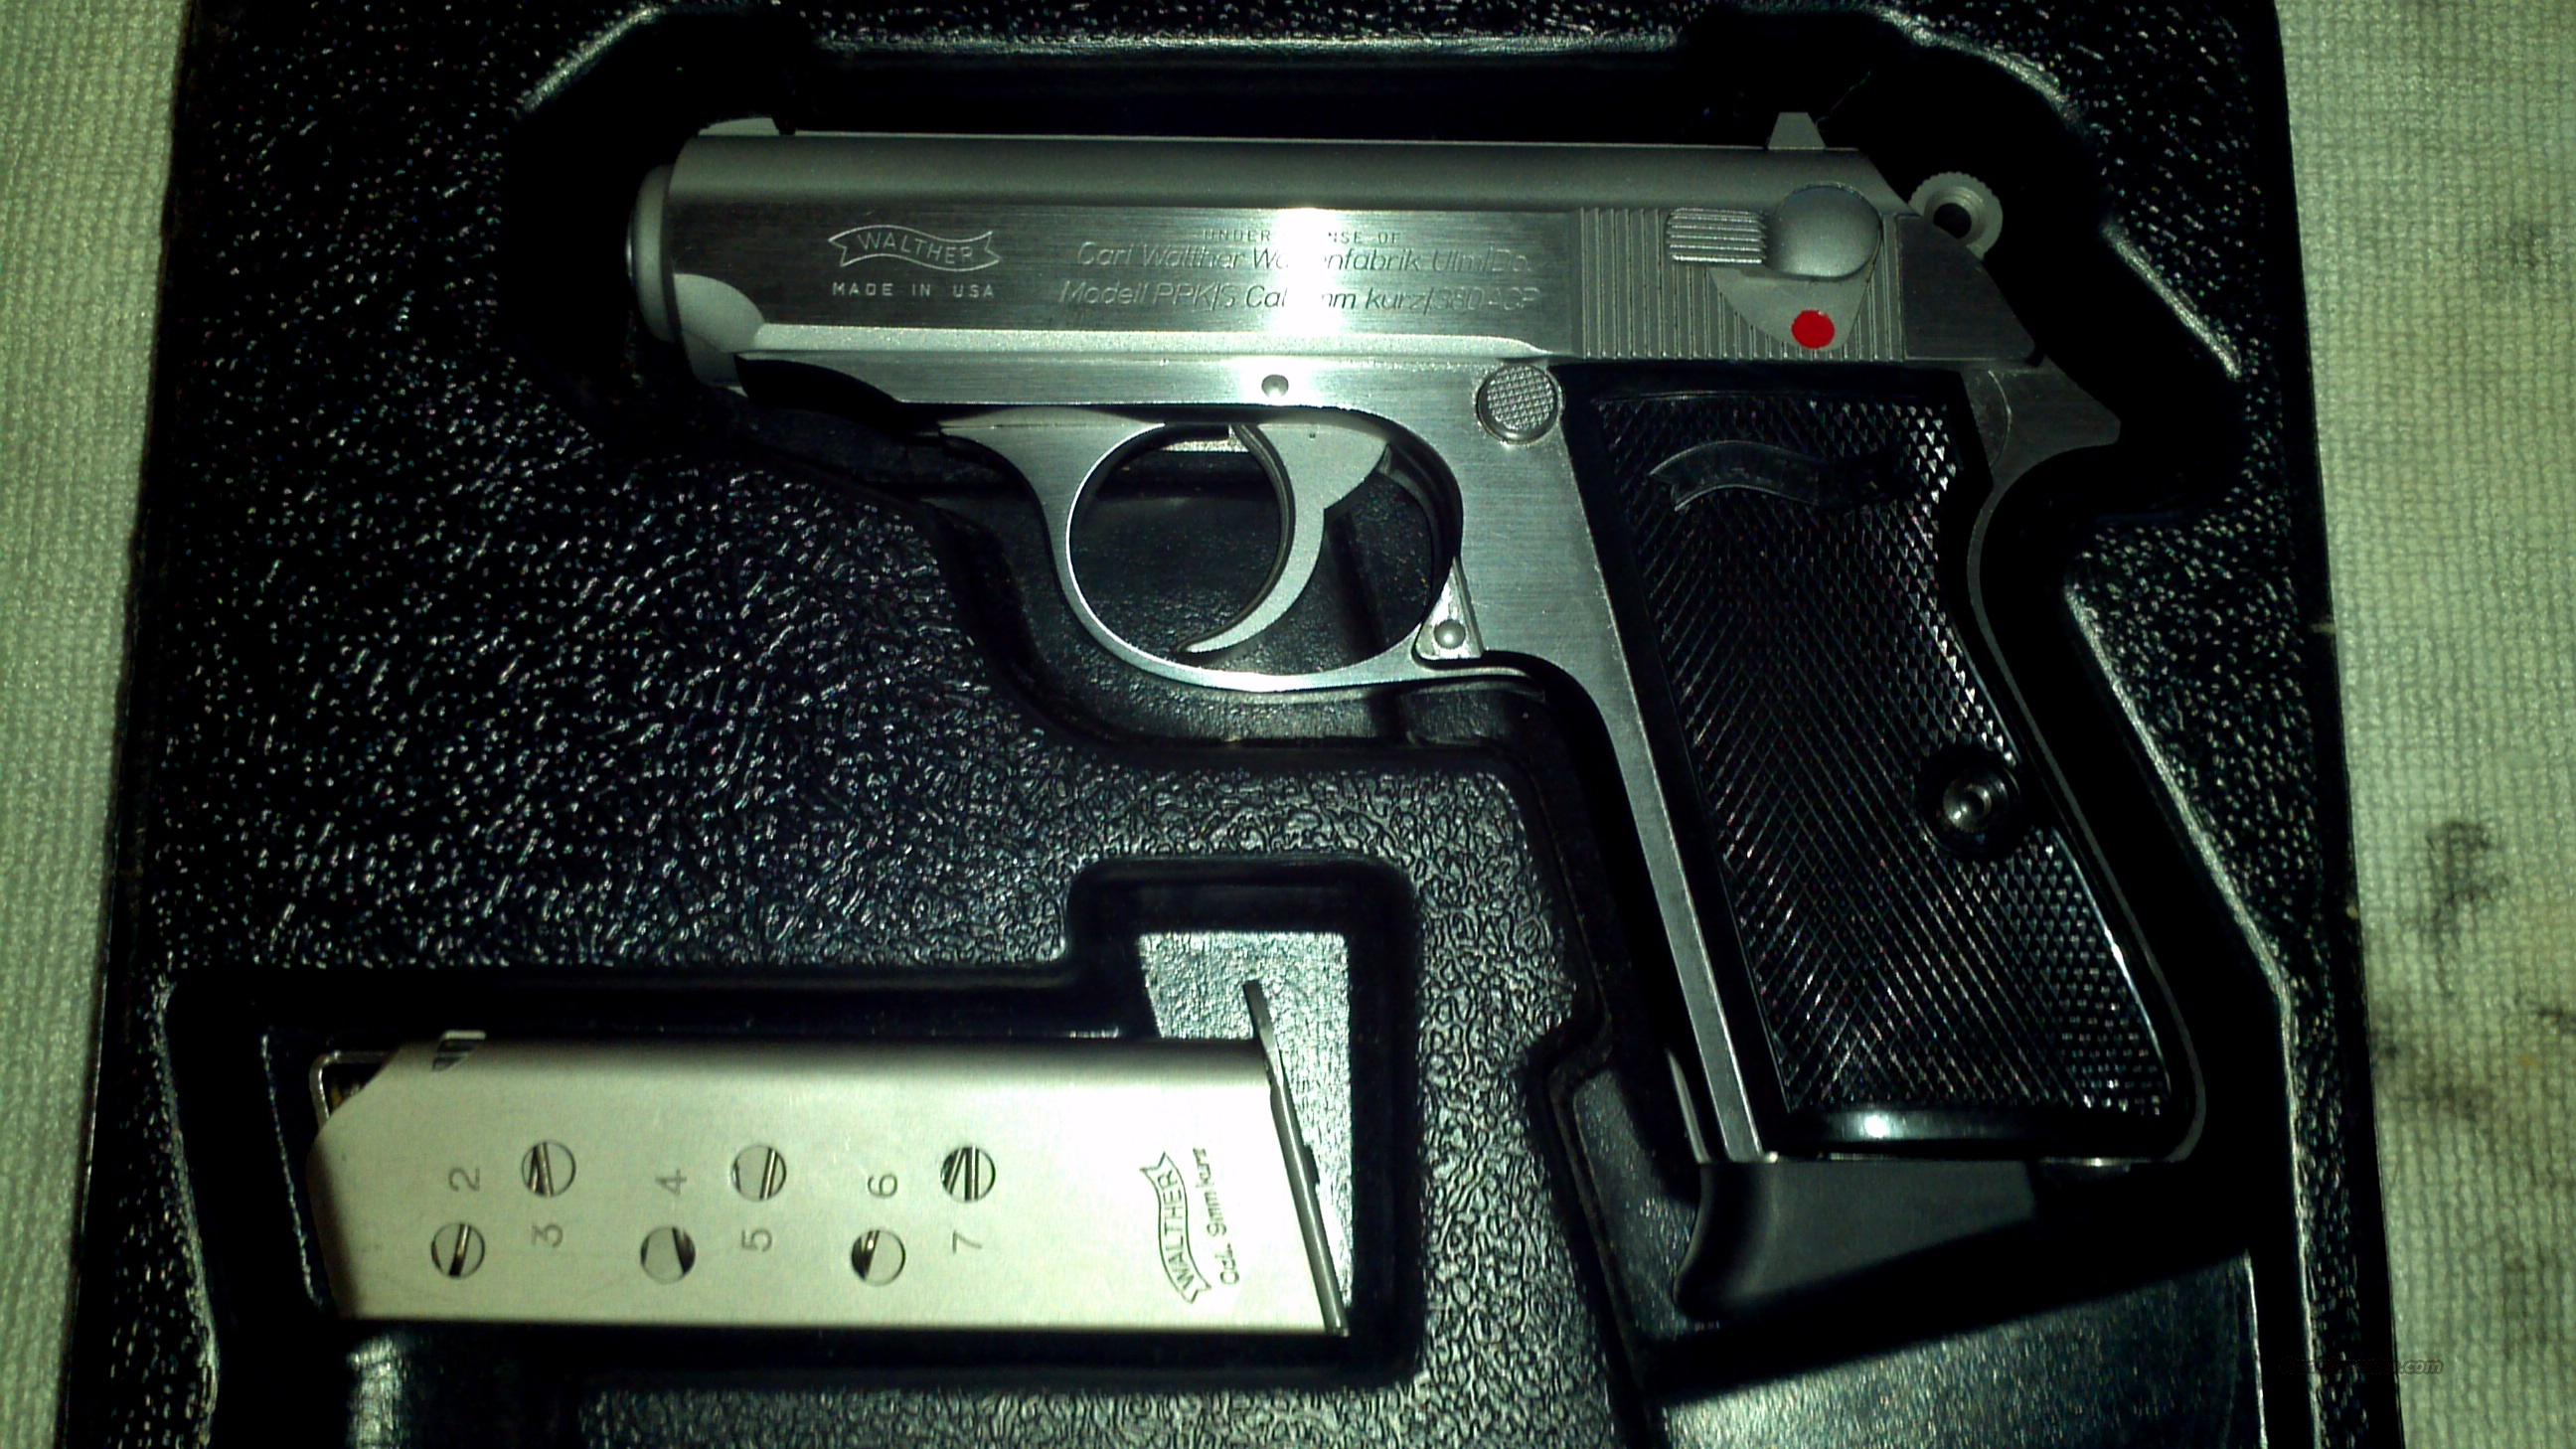 WALTHER PPK/S .380ACP SS INTERARMS  Guns > Pistols > Walther Pistols > Post WWII > PPK Series